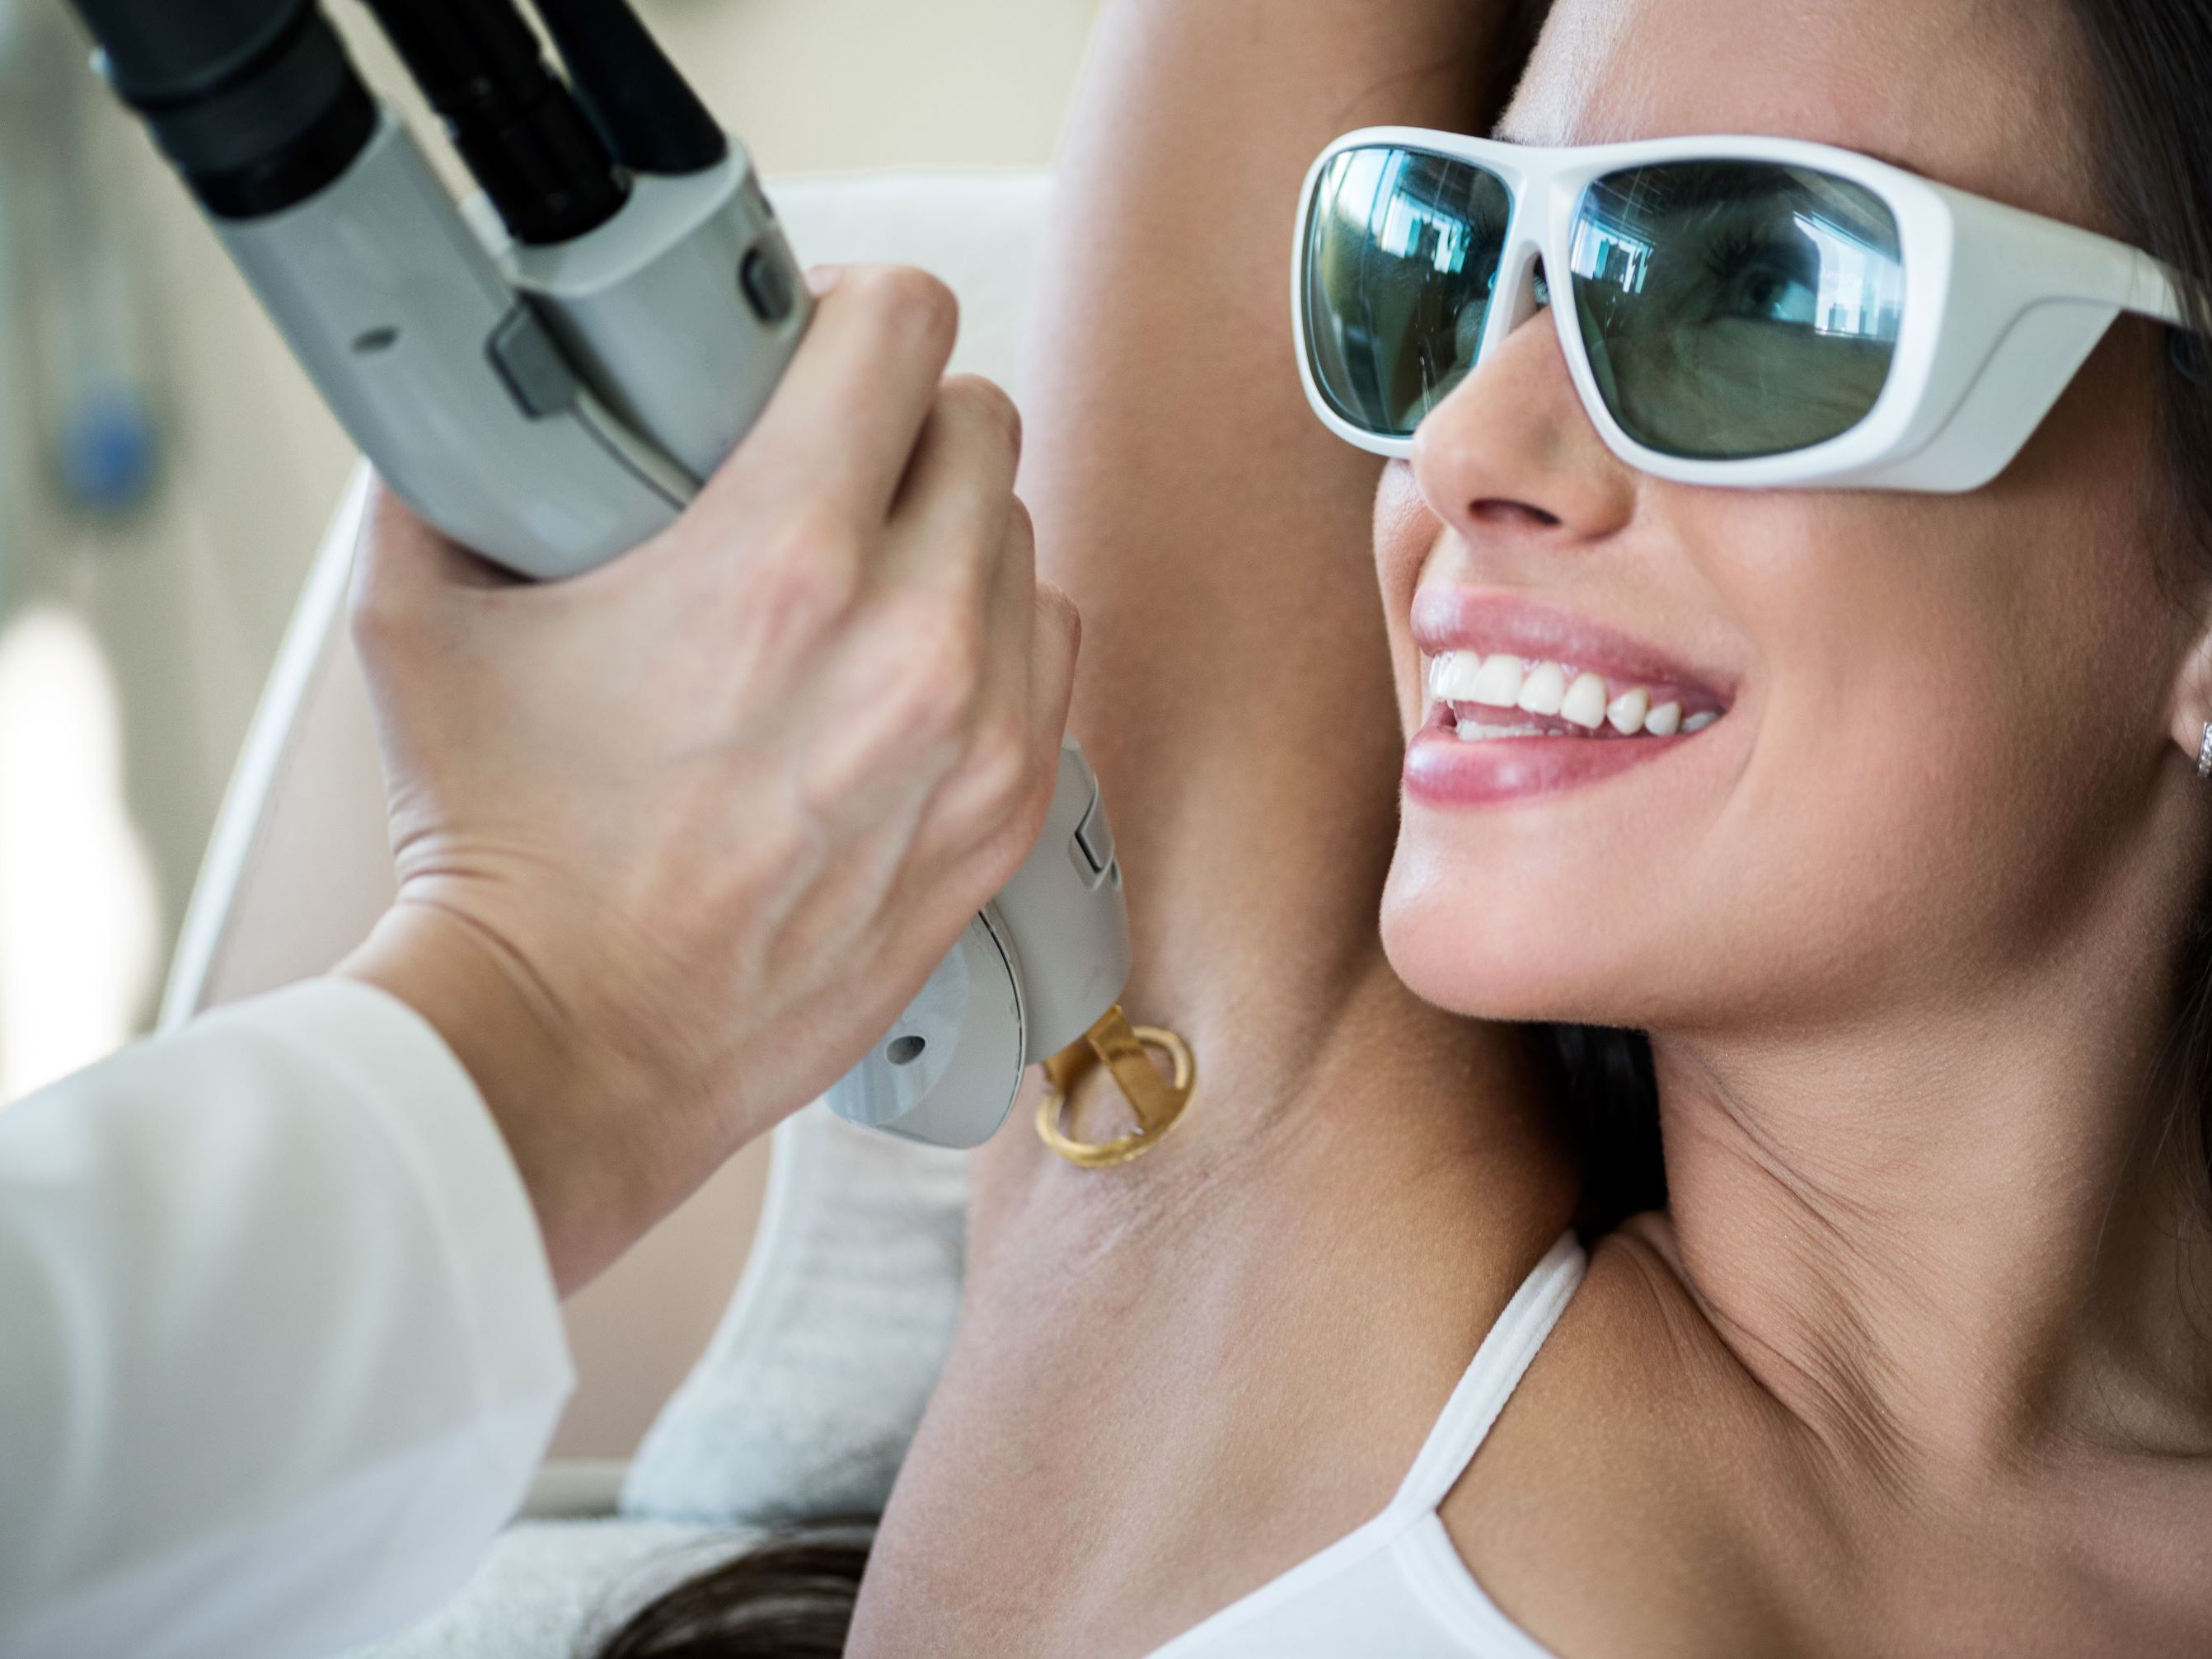 Electrolysis Or Laser For Upper Lip Hair Removal